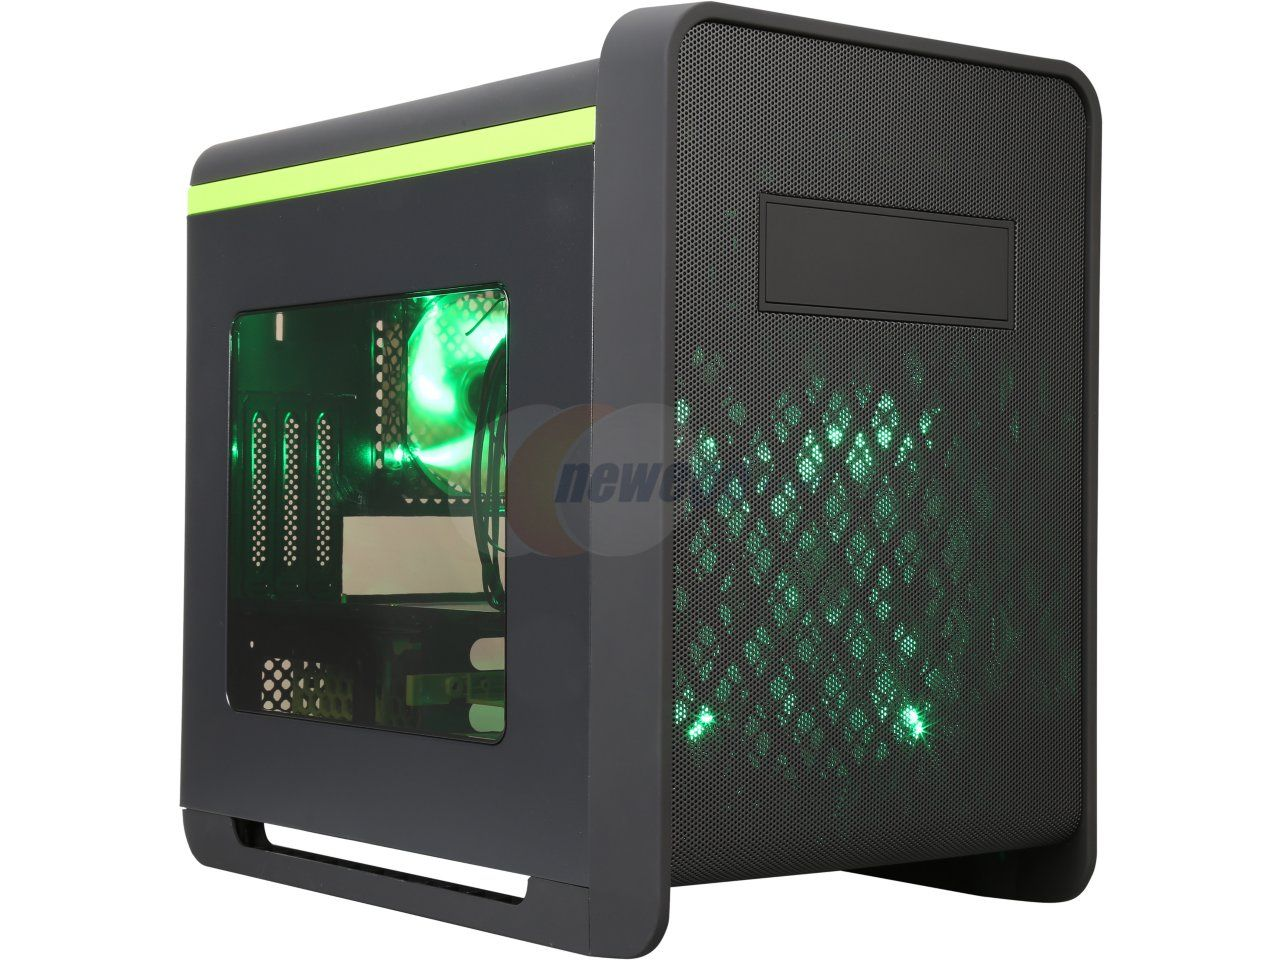 DIYPC Cuboid-G Black USB 3.0 Gaming Micro-ATX Mid Tower Computer Case w/1 x 200mm LED Green Fan x Front, 1 x120mm LED Green Fan x Rear - Newegg.com